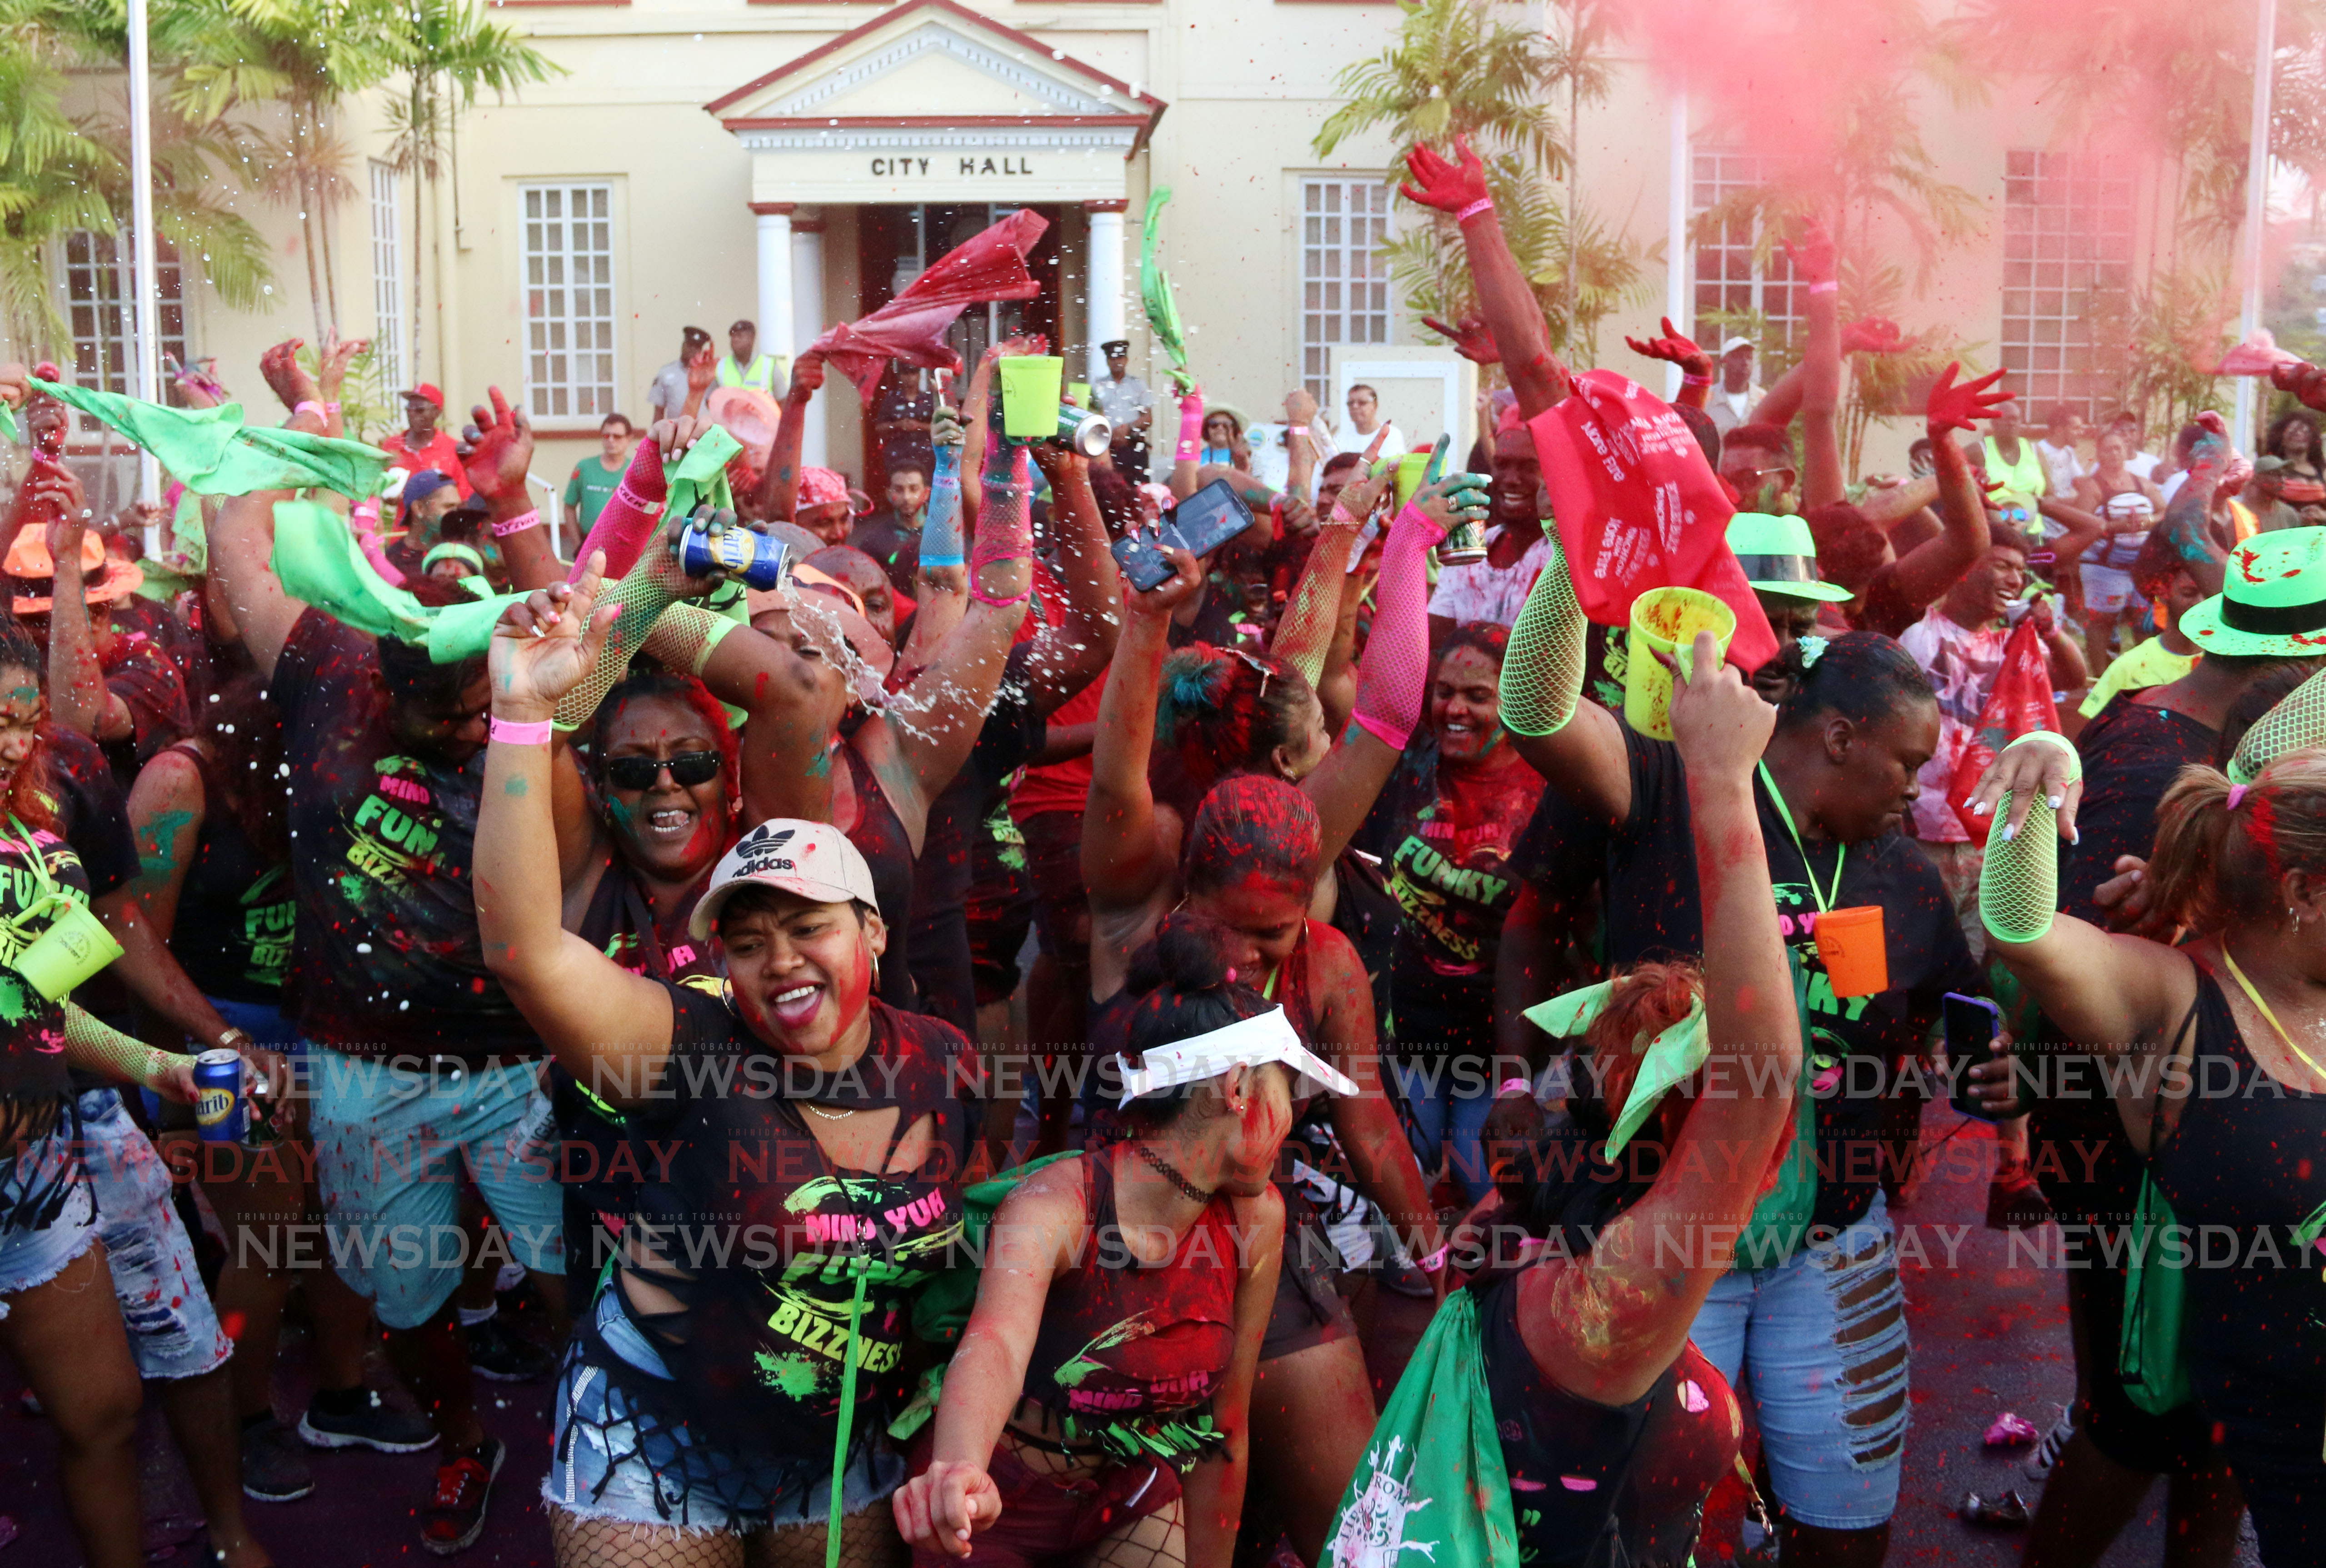 Playerz Crew in San Fernando for Jouvert morning PHOTO BY: ANSEL JEBODH